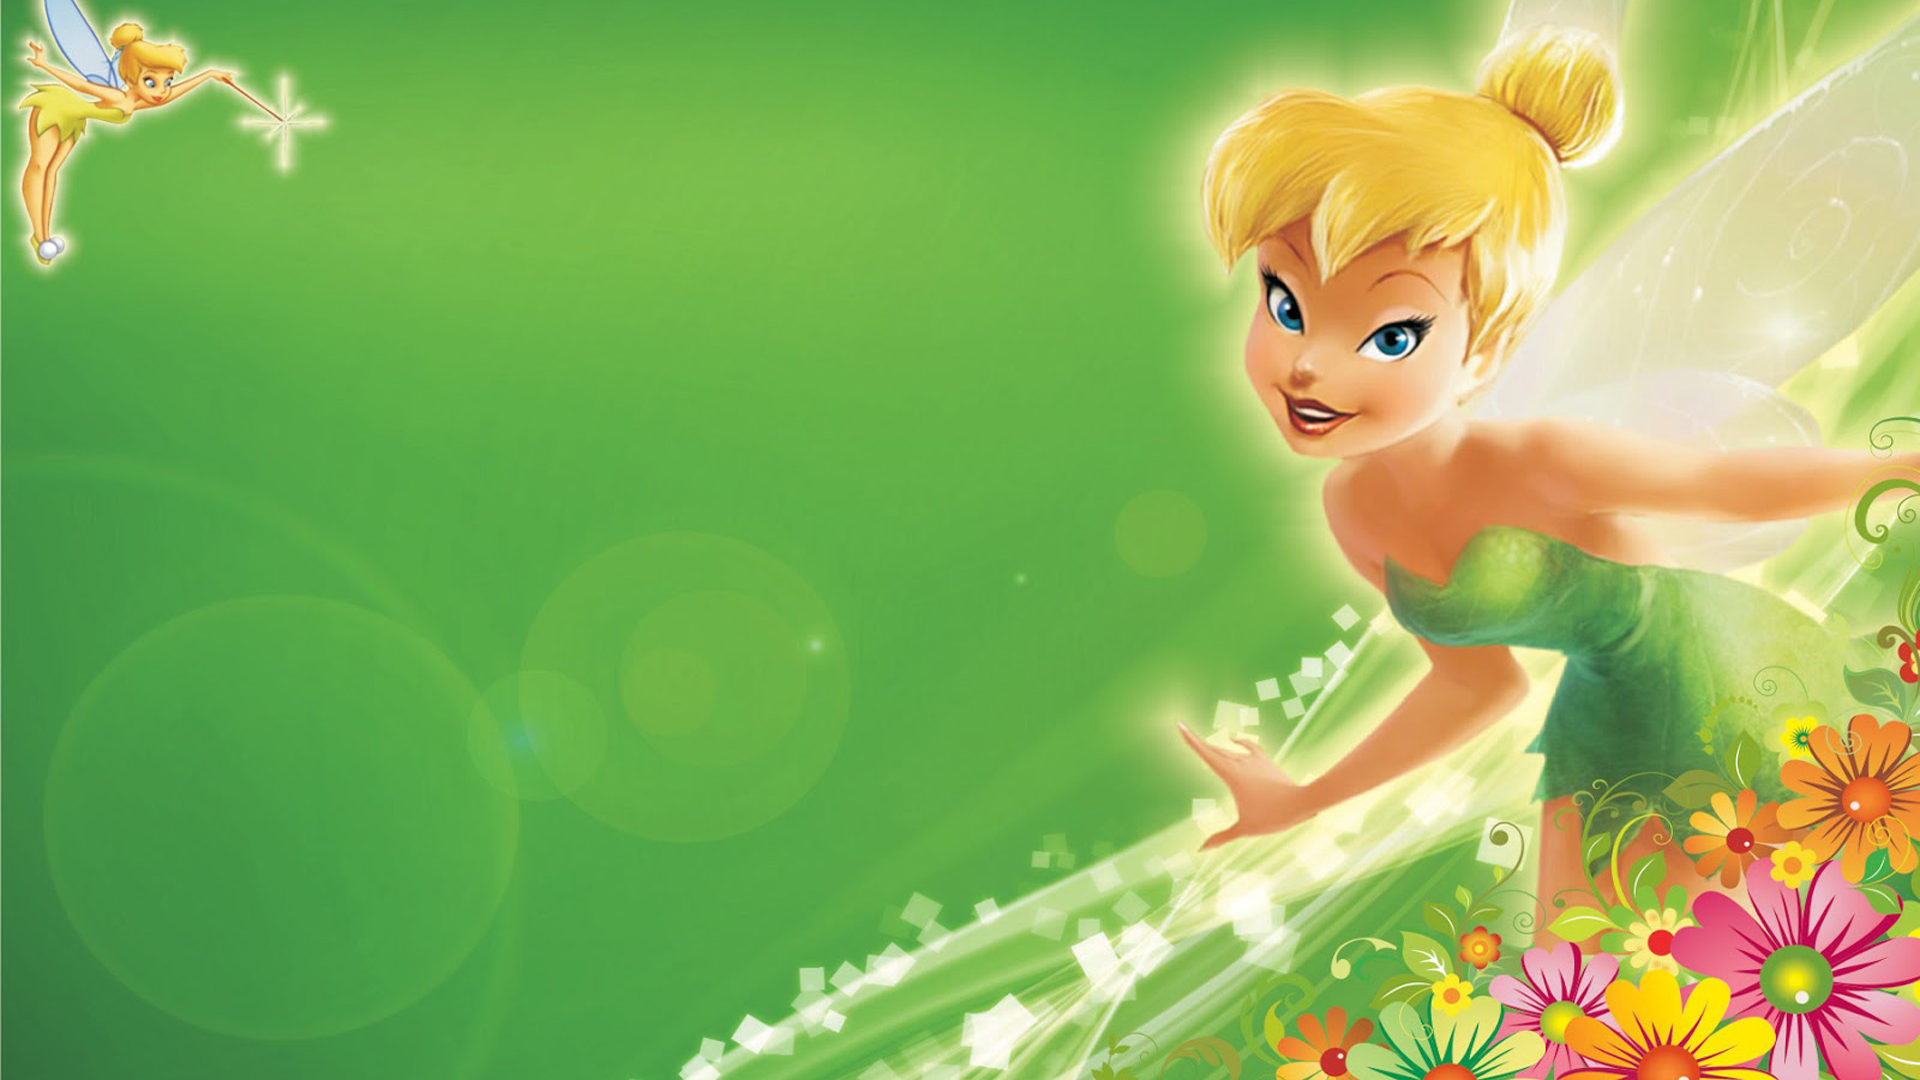 Animated Waterfall Wallpapers For Mobile Tinkerbell Green Hd Wallpapers With Flower Decoration For